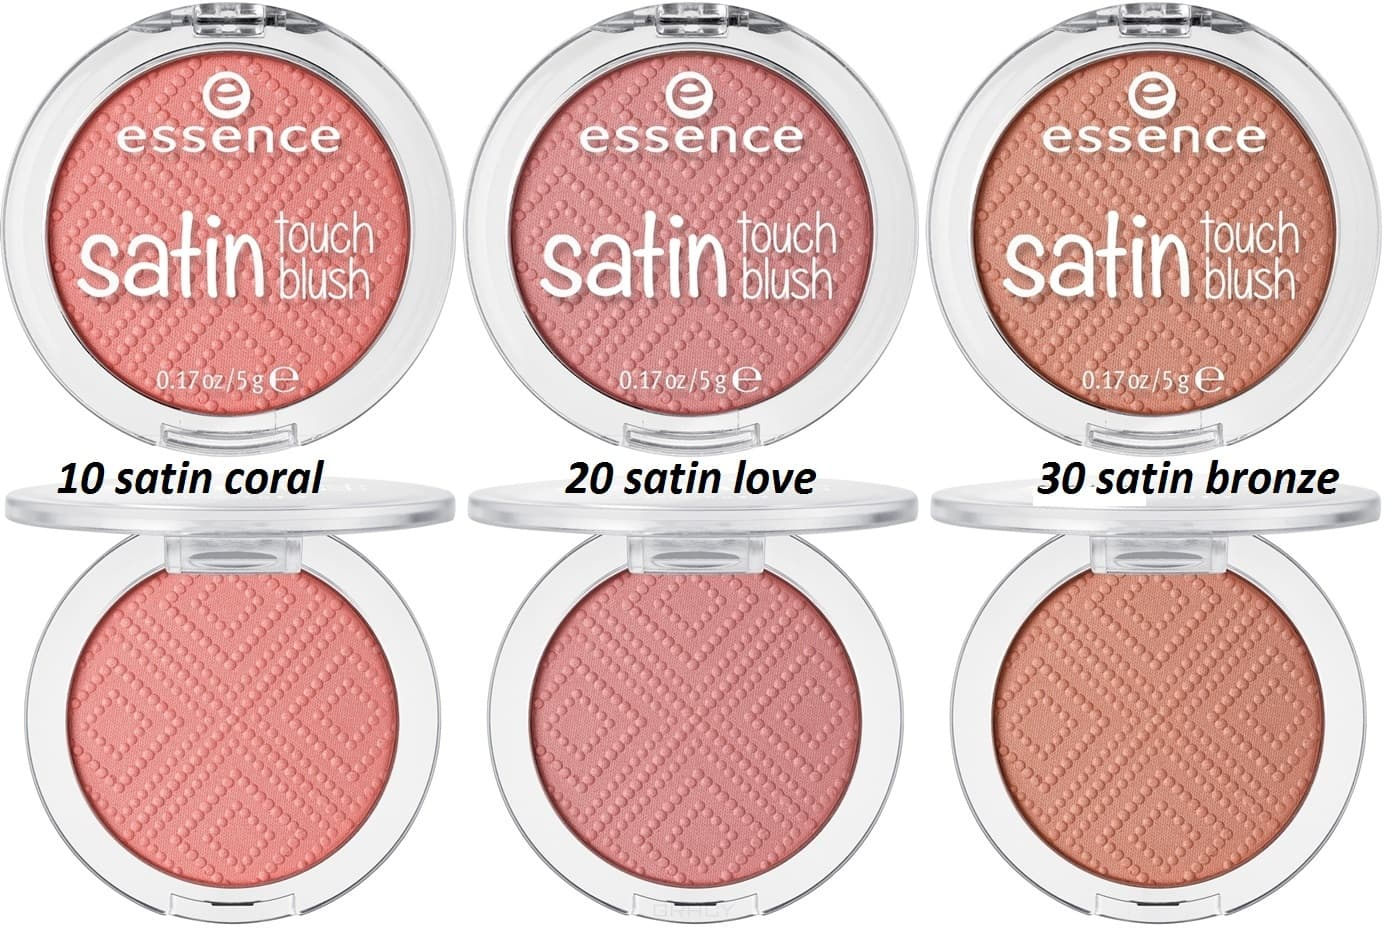 Essence Румяна Satin Touch Blush, 5 гр , Румяна Satin Touch Blush, 5 гр, т.20 Любовь, 5 гр румяна essence satin touch blush 20 цвет 20 satin love variant hex name ce908f